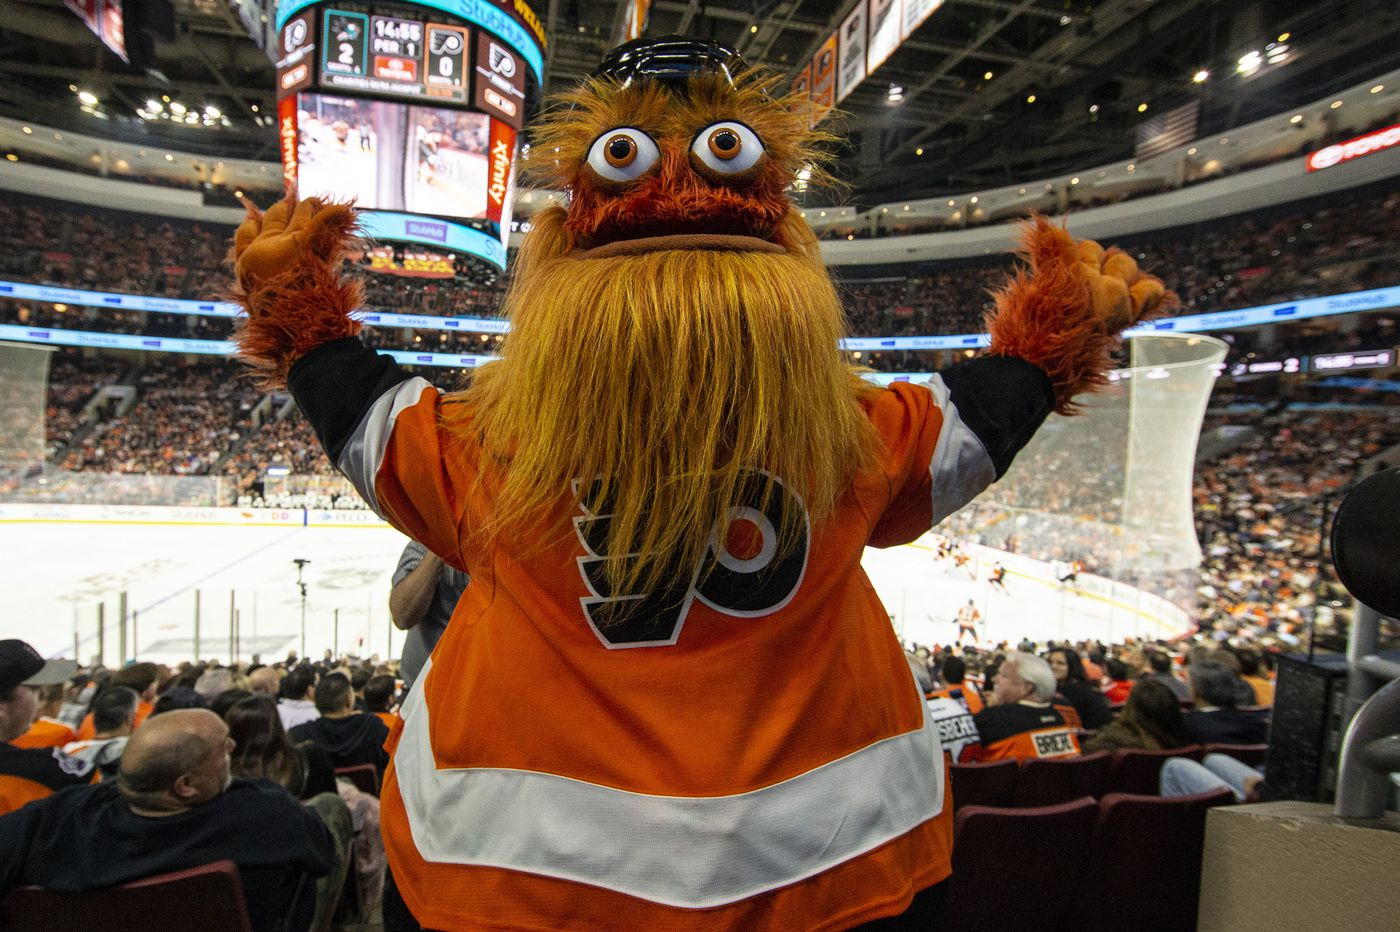 Gritty, Philly's overlord of happiness, to take over Happy Place